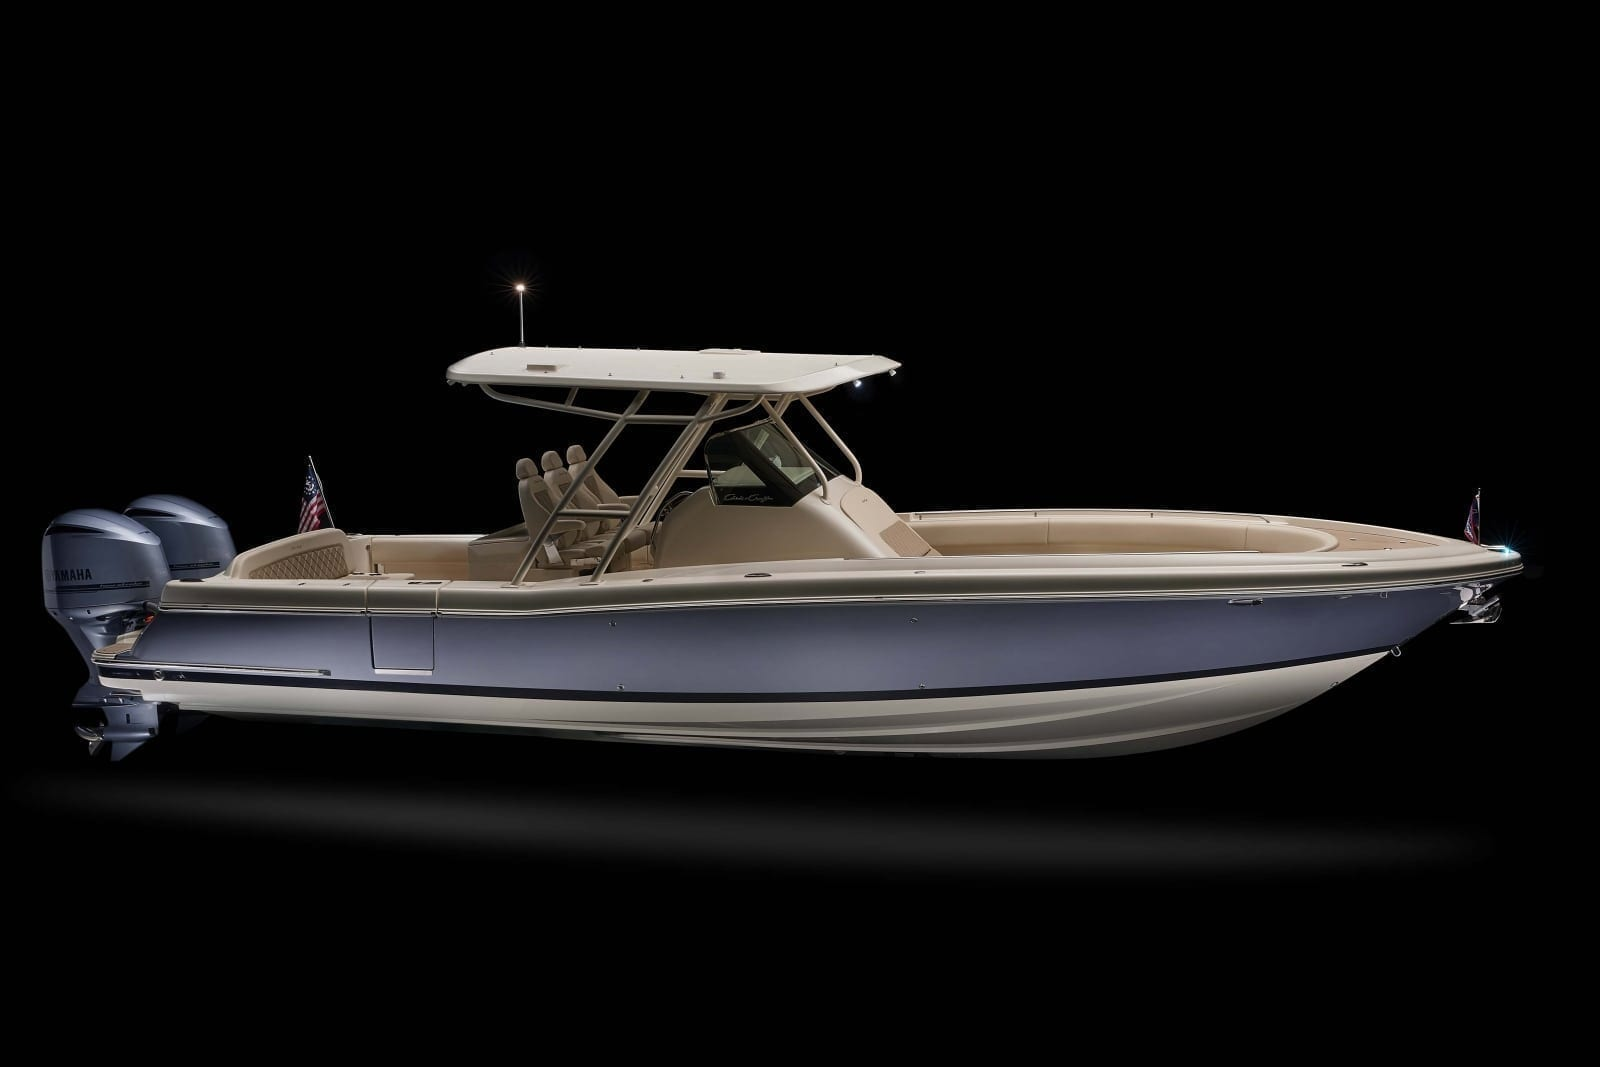 Chris Craft Catalina 34 Side Profile View